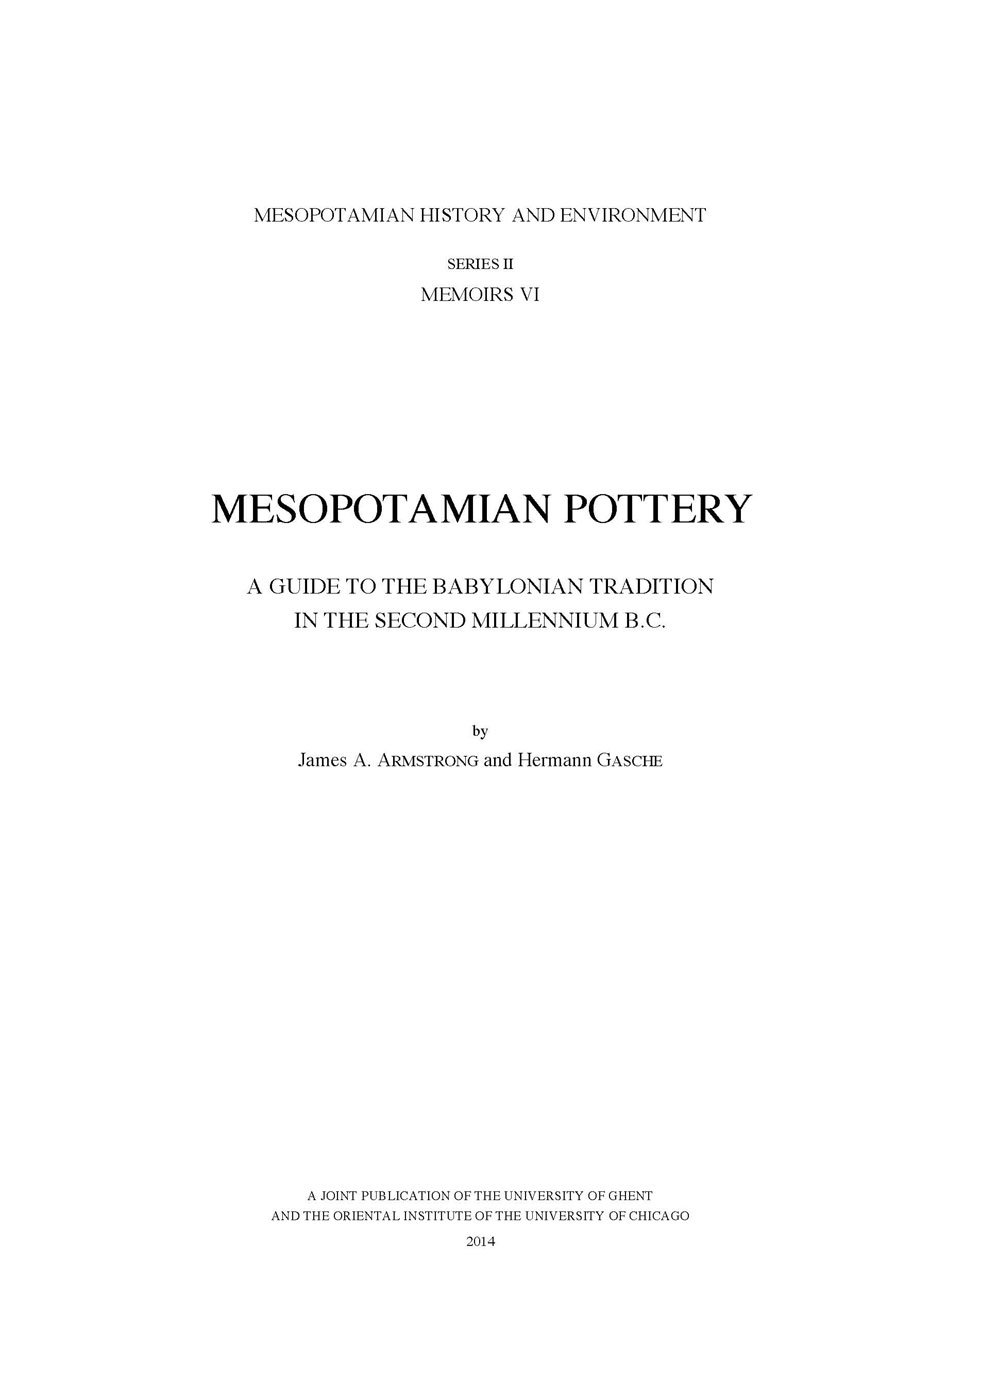 Download Mesopotamian Pottery: A Guide to the Babylonian Tradition in the Second Millennium B.C. (Mesopotamian History and Environment) PDF